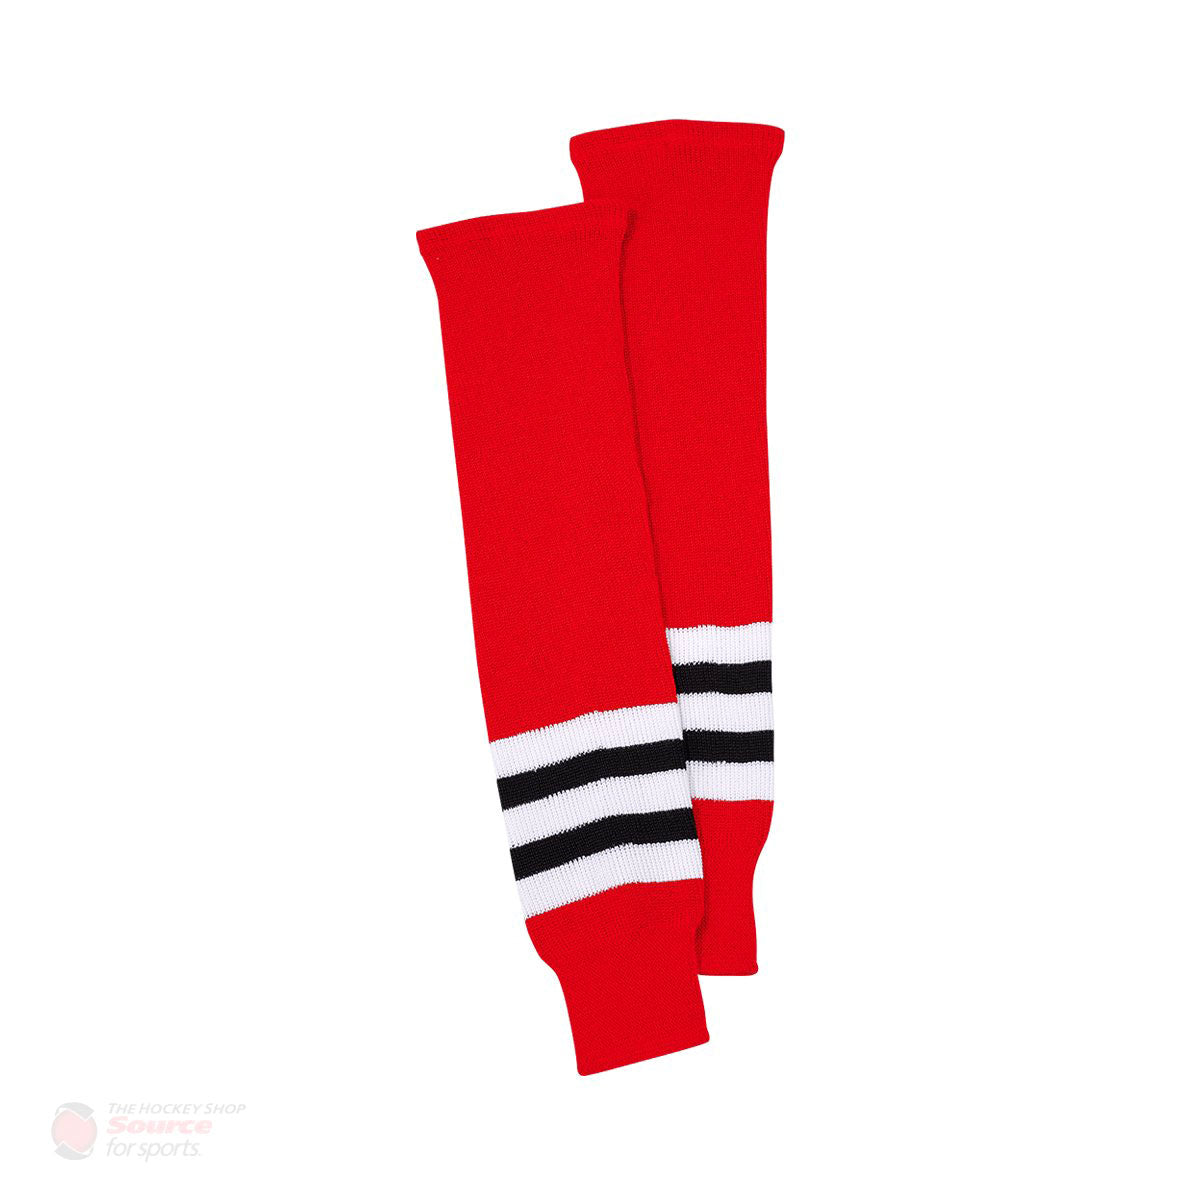 Chicago Blackhawks Senior Knit Hockey Socks